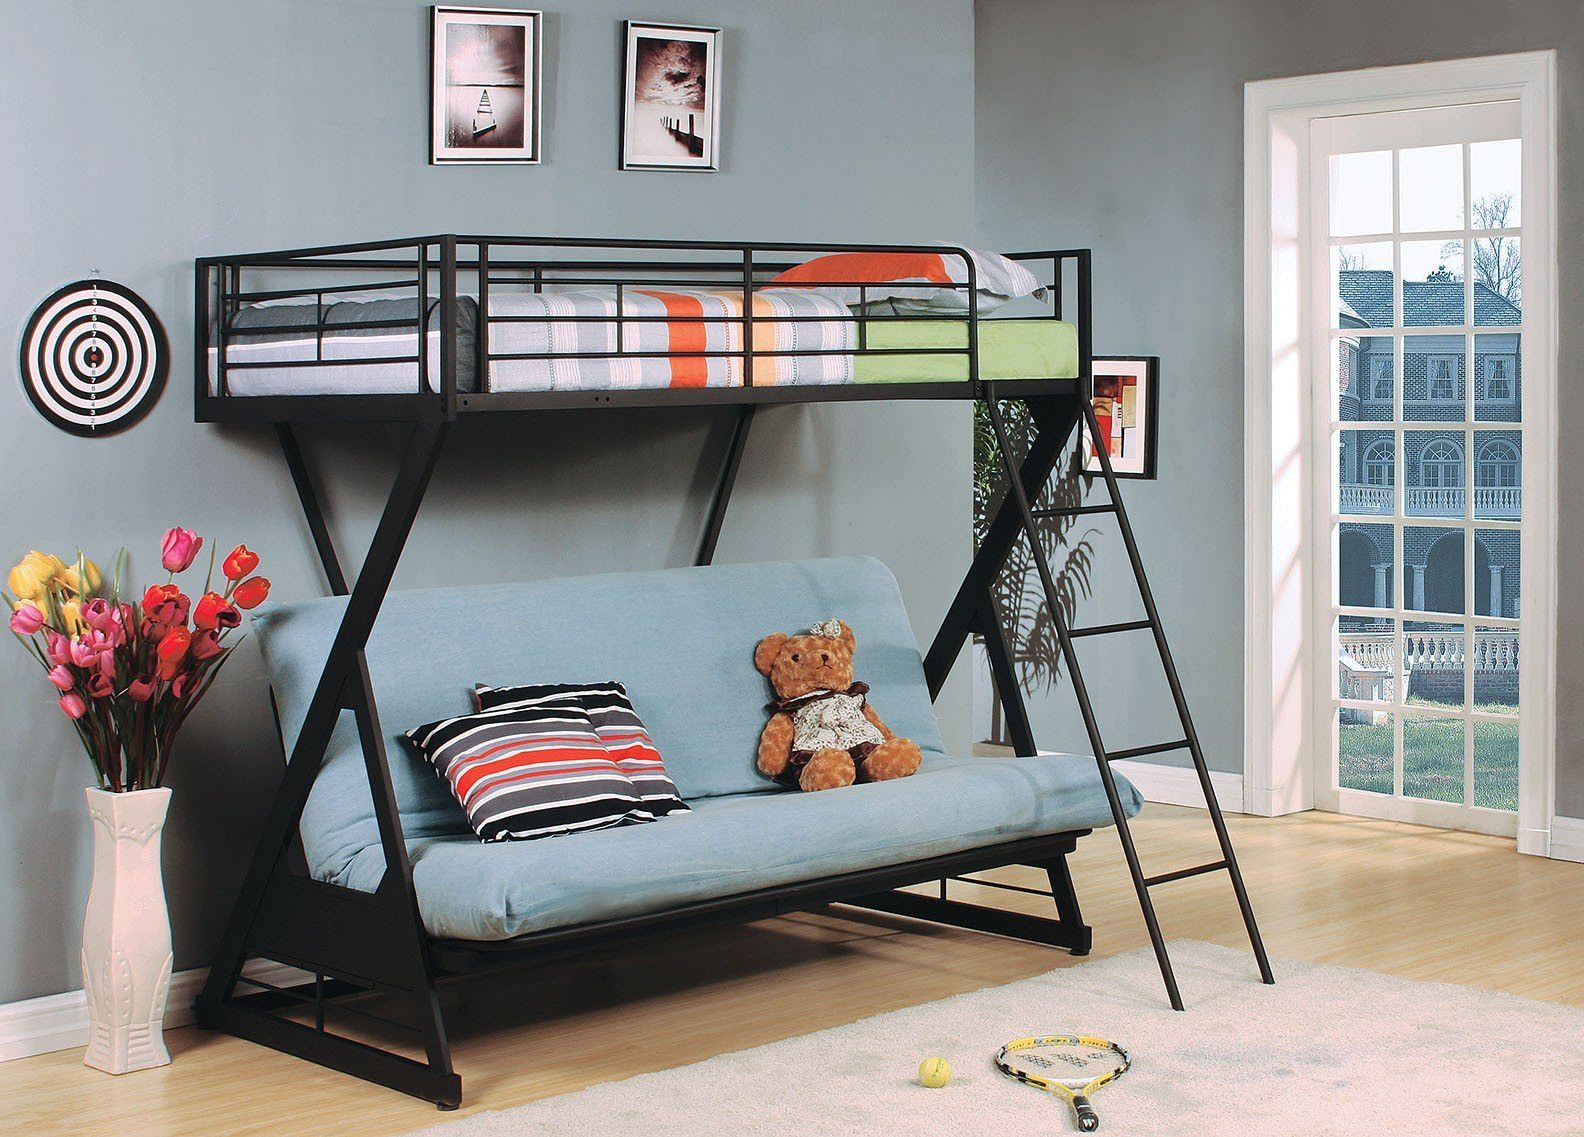 Zazie Twin Full Futon Bunk Bed 37134 343 Features Sandy Black Finish Dimensions